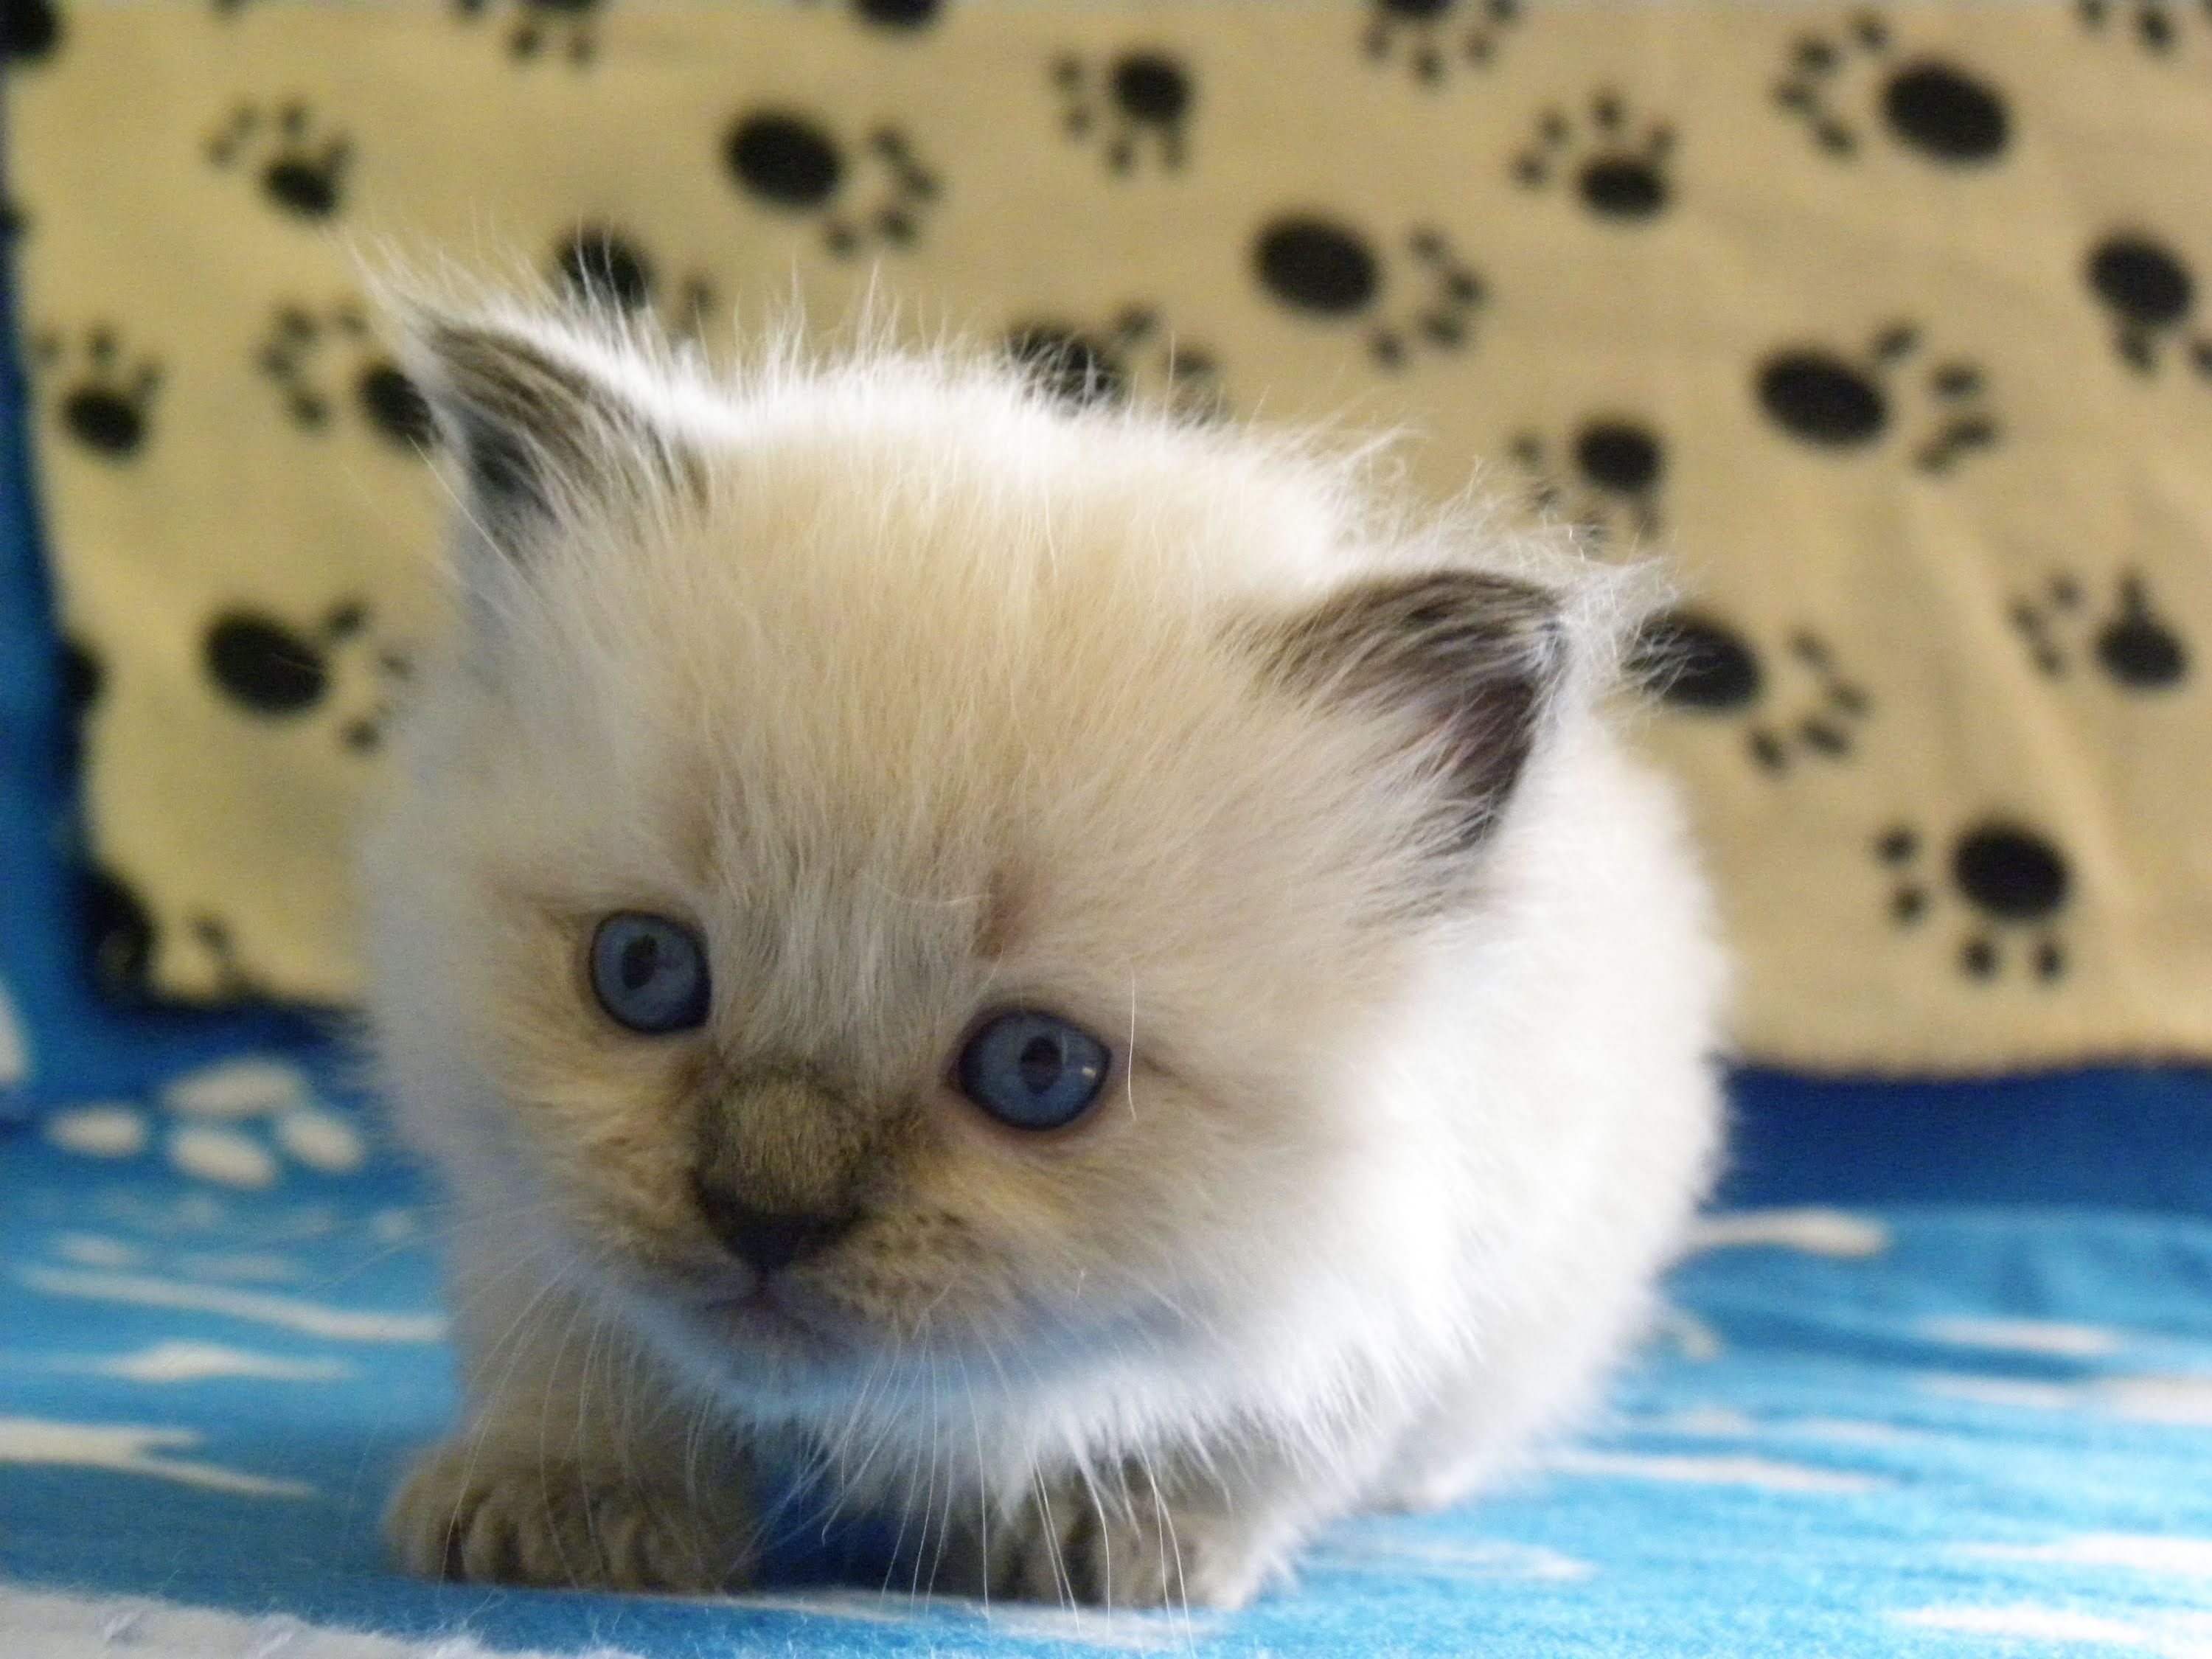 Kitten Time Lapse Watch Them Grow Up In Just 5 Minutes Http Allkitties247 Com Cat Photo Videos Kitt Kitten Pictures Cats And Kittens Cat Lovers